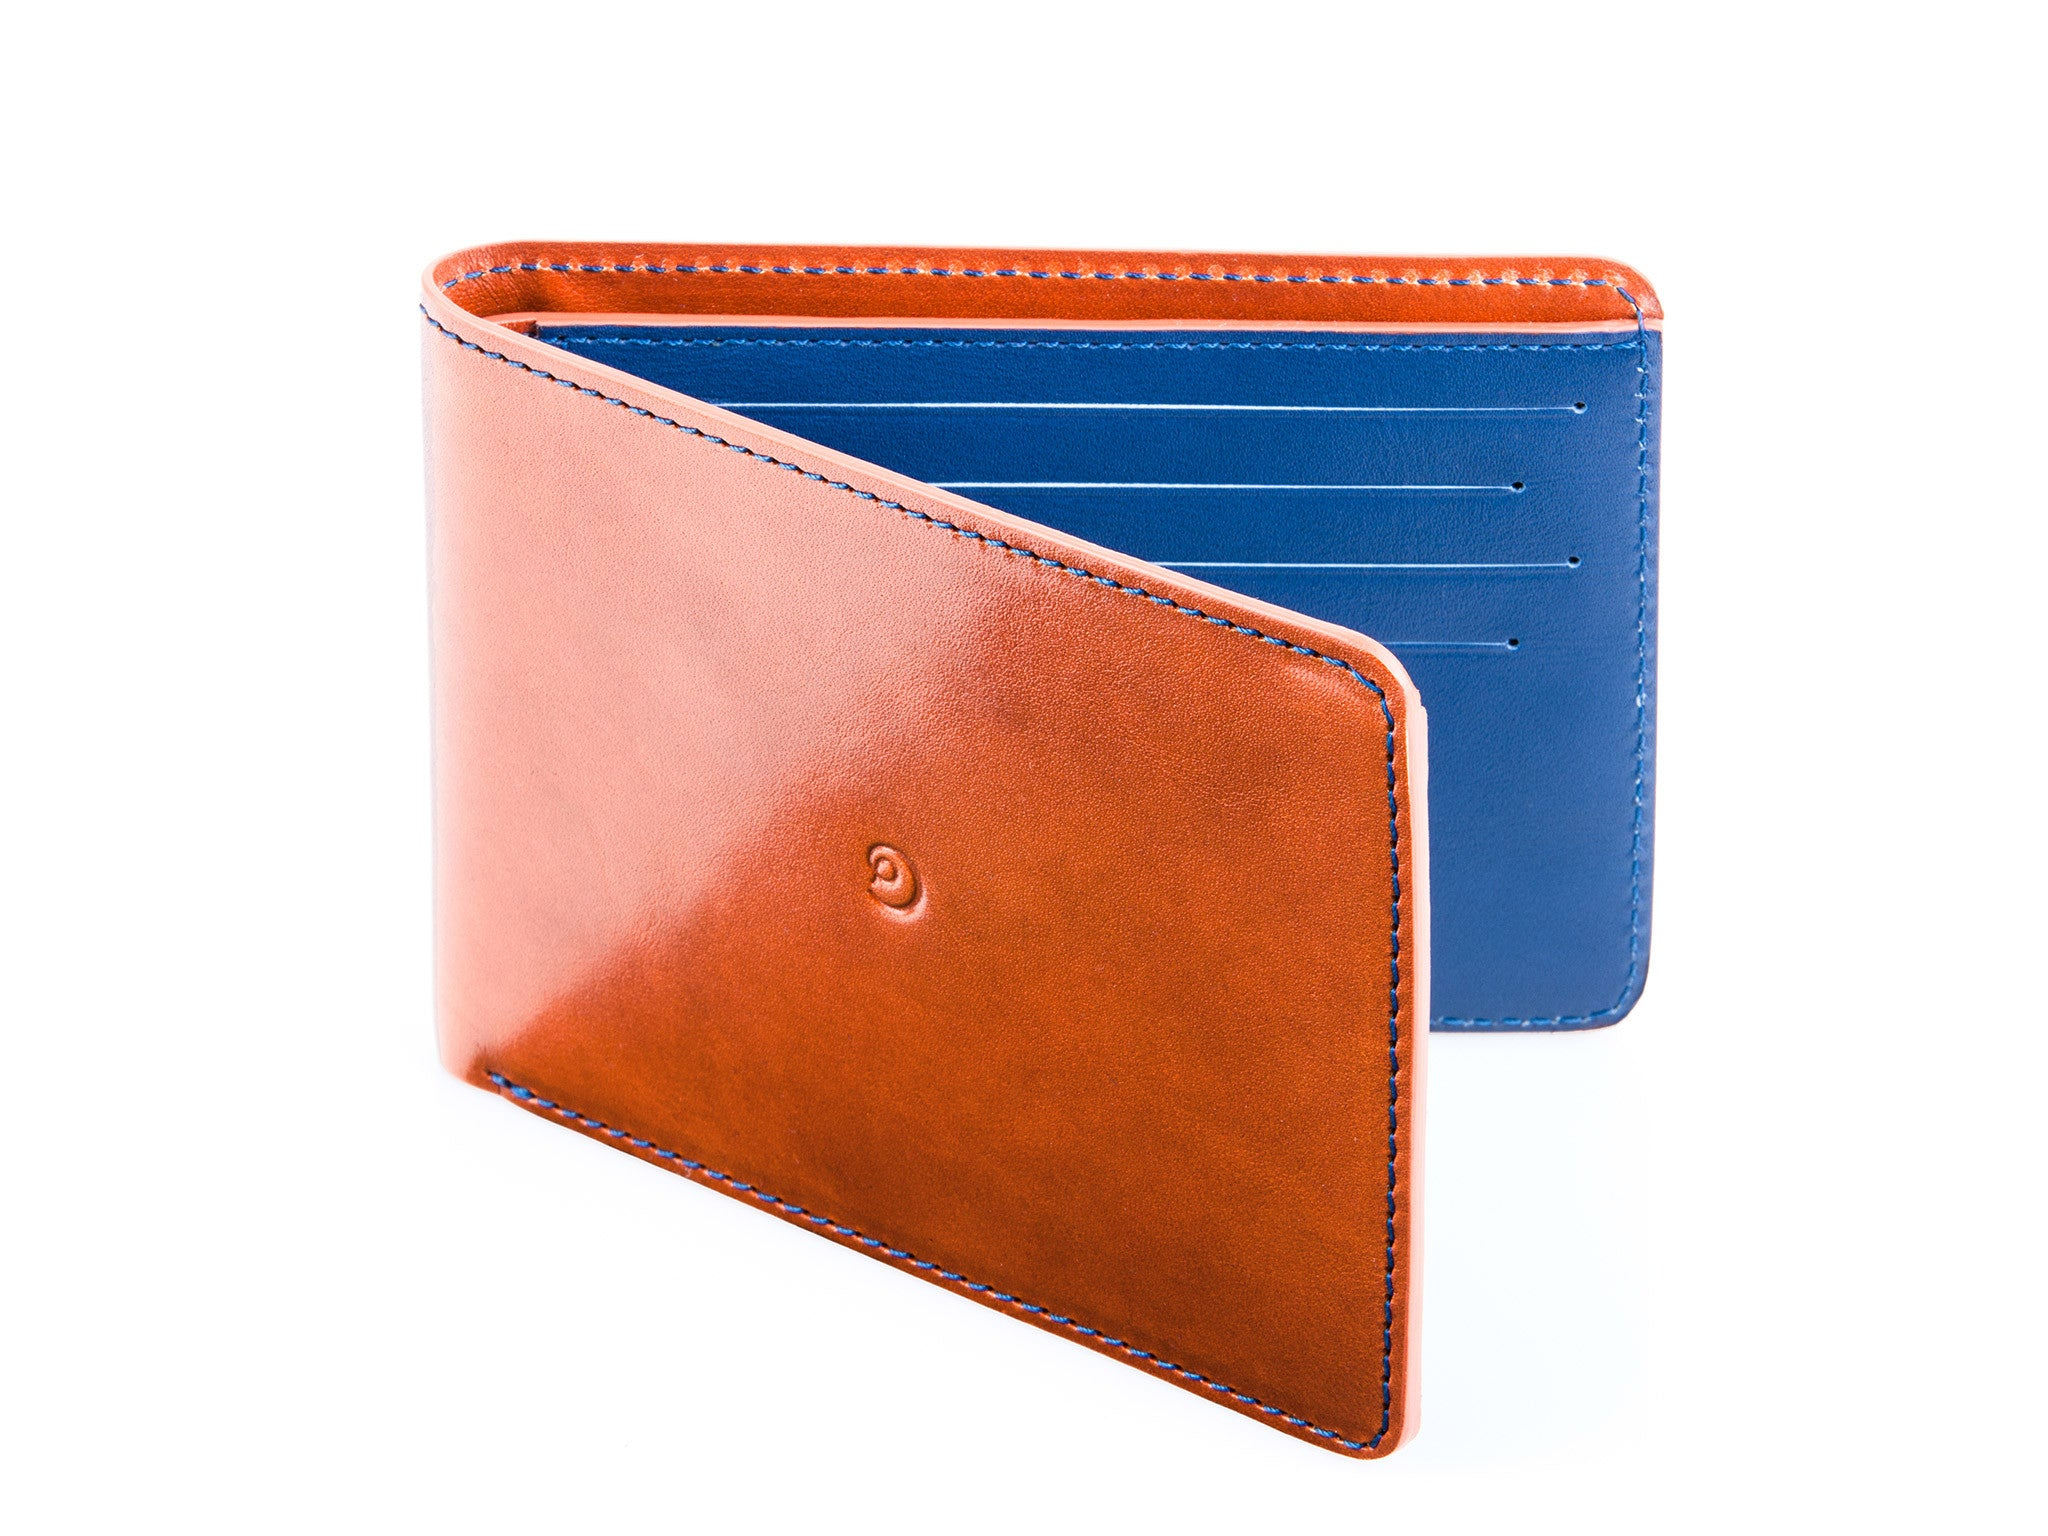 2ca18e361369 Slim leather wallet brown/blue